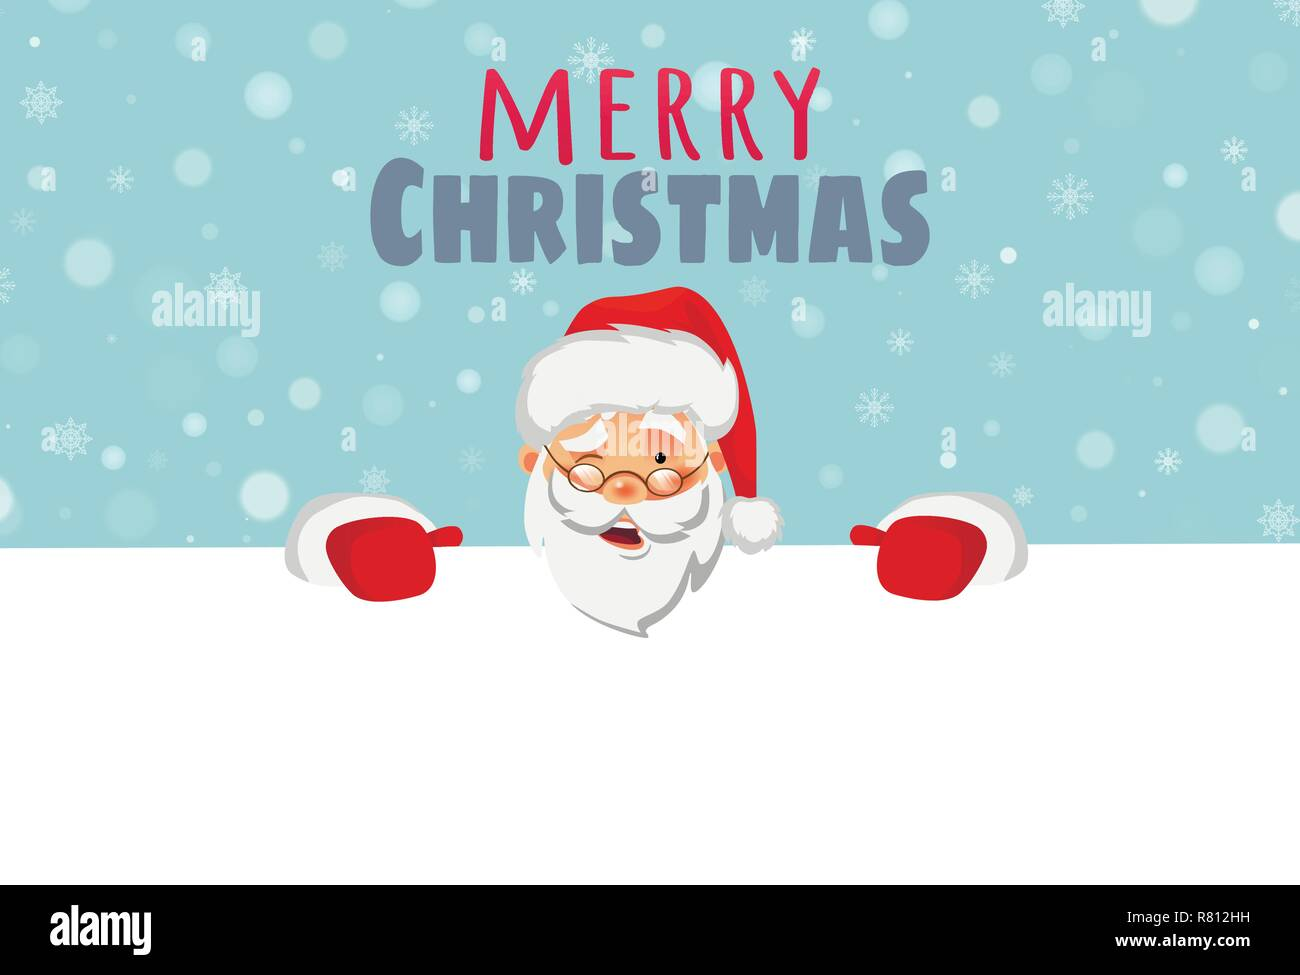 Merry Christmas Text.Santa Claus Holding Border Christmas Blank Advertising